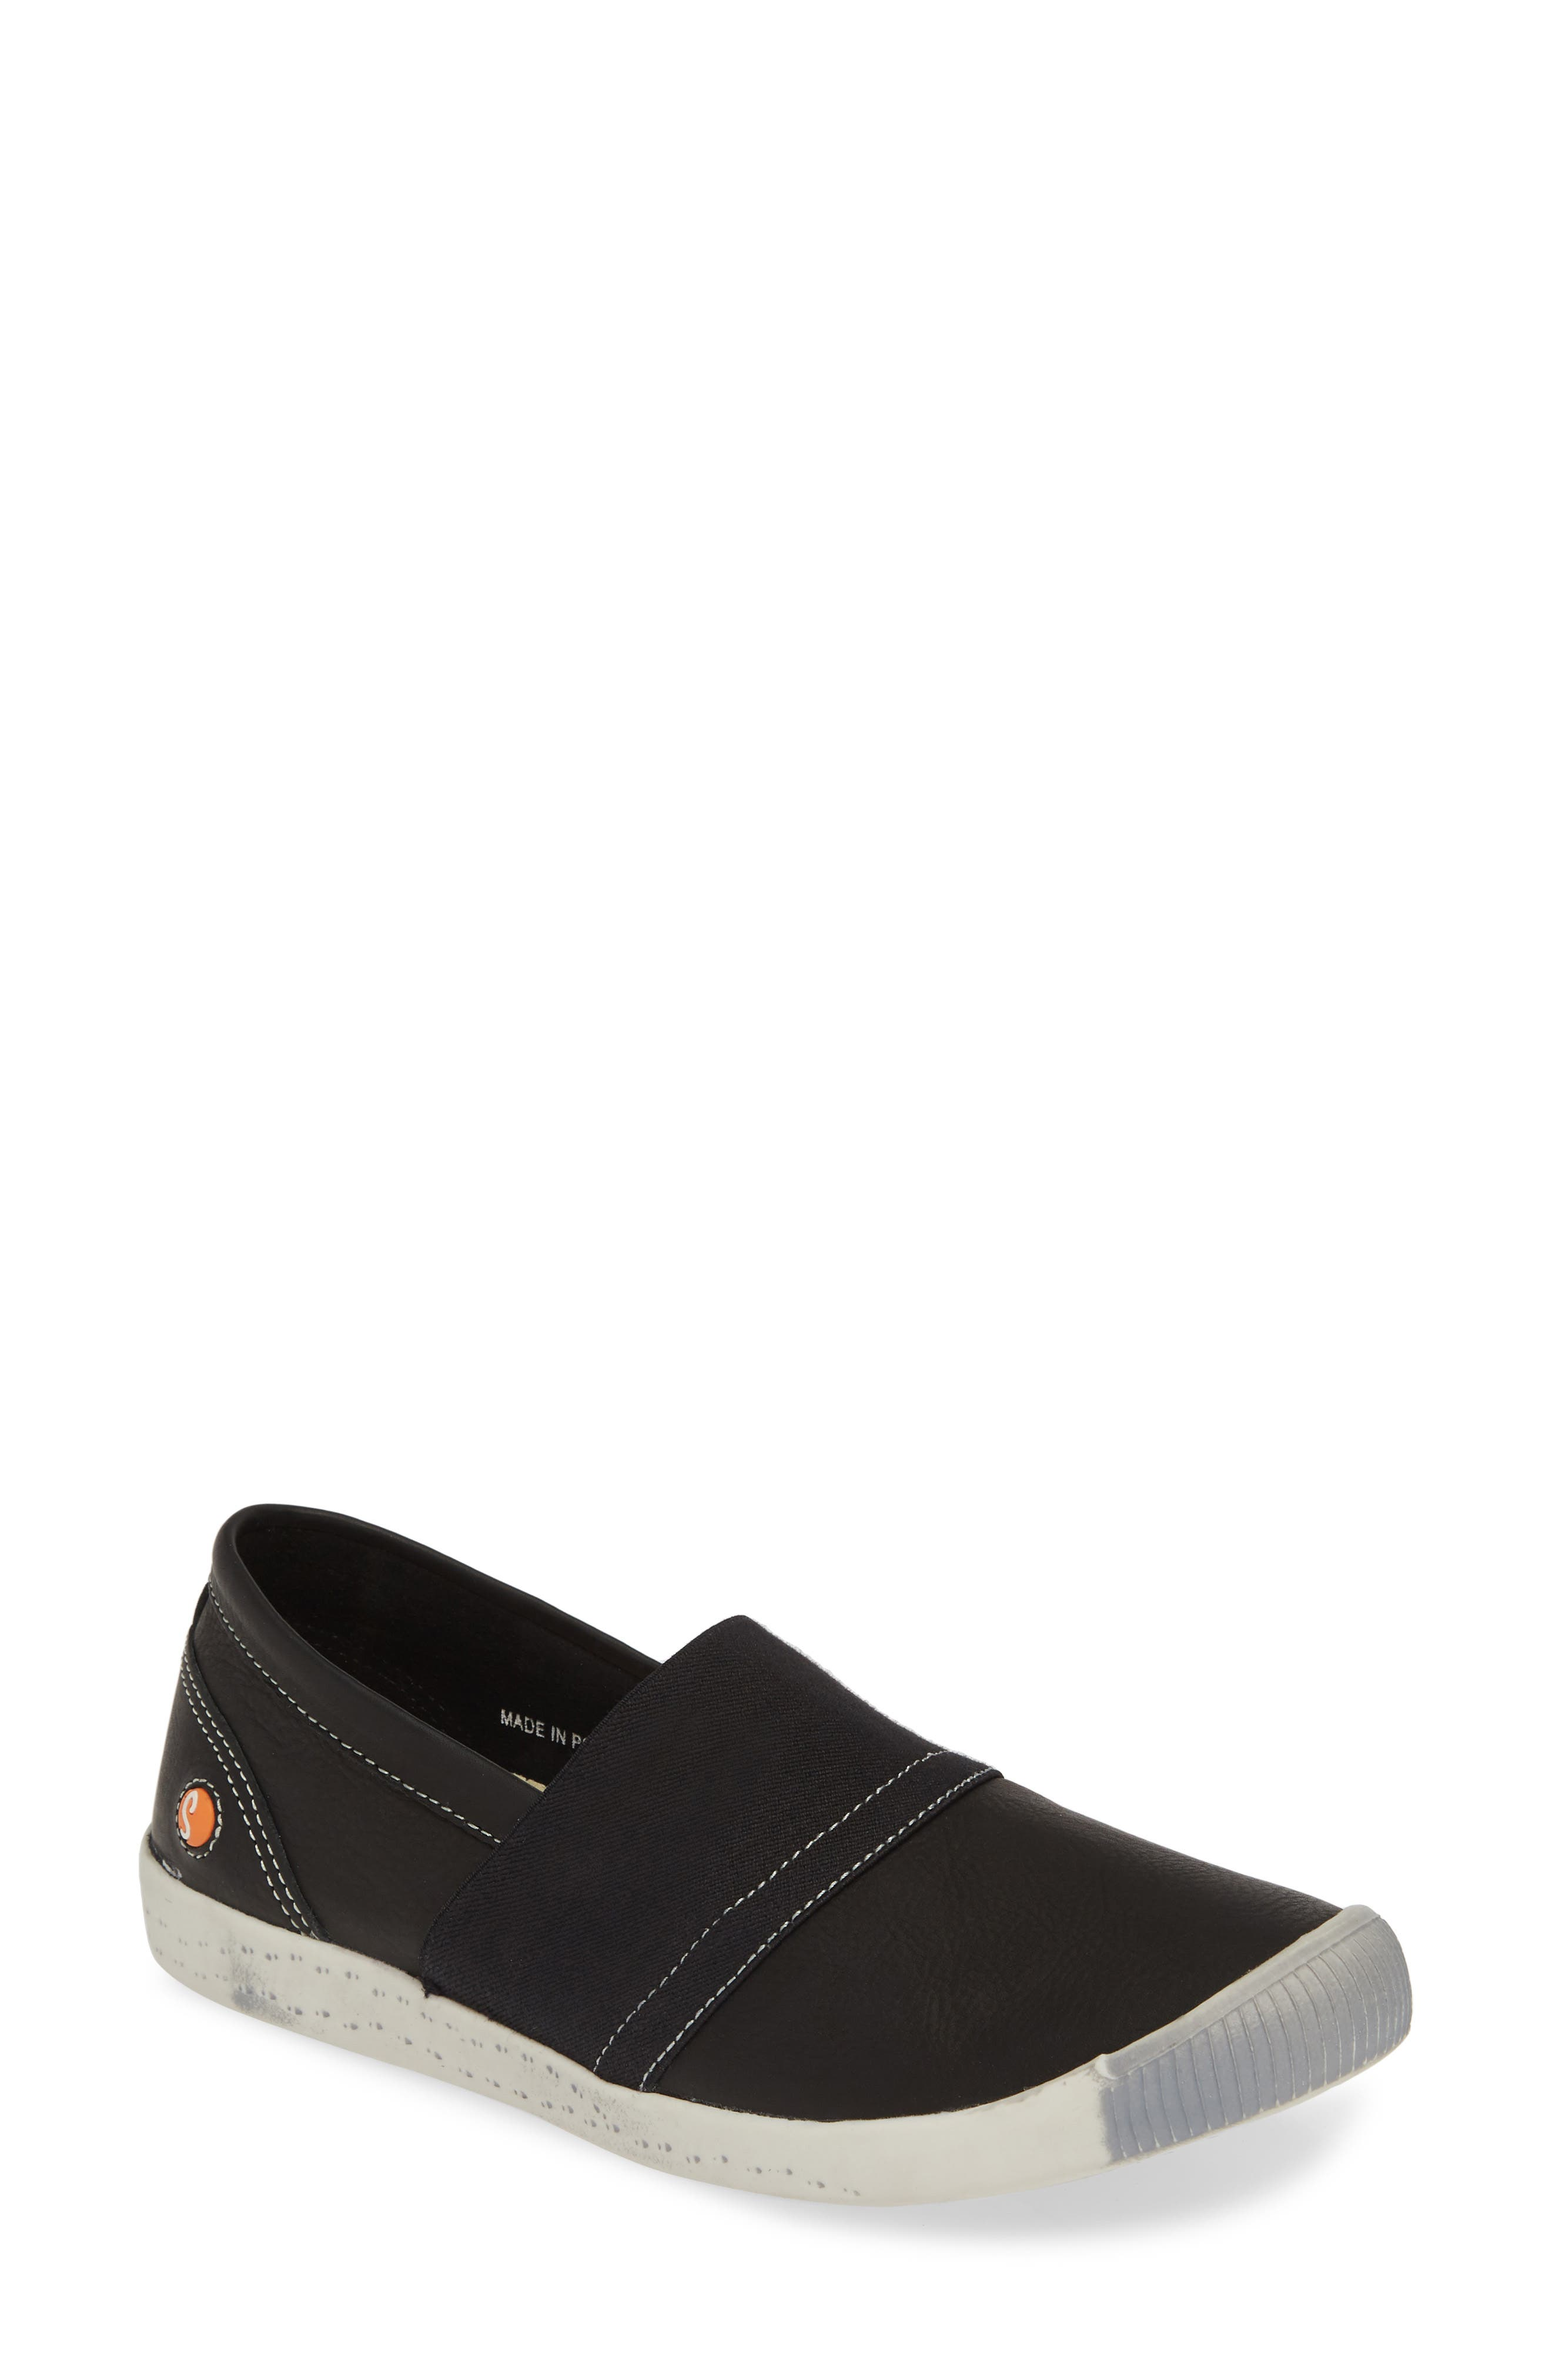 Softinos By Fly London Ino Slip-On Sneaker - Black